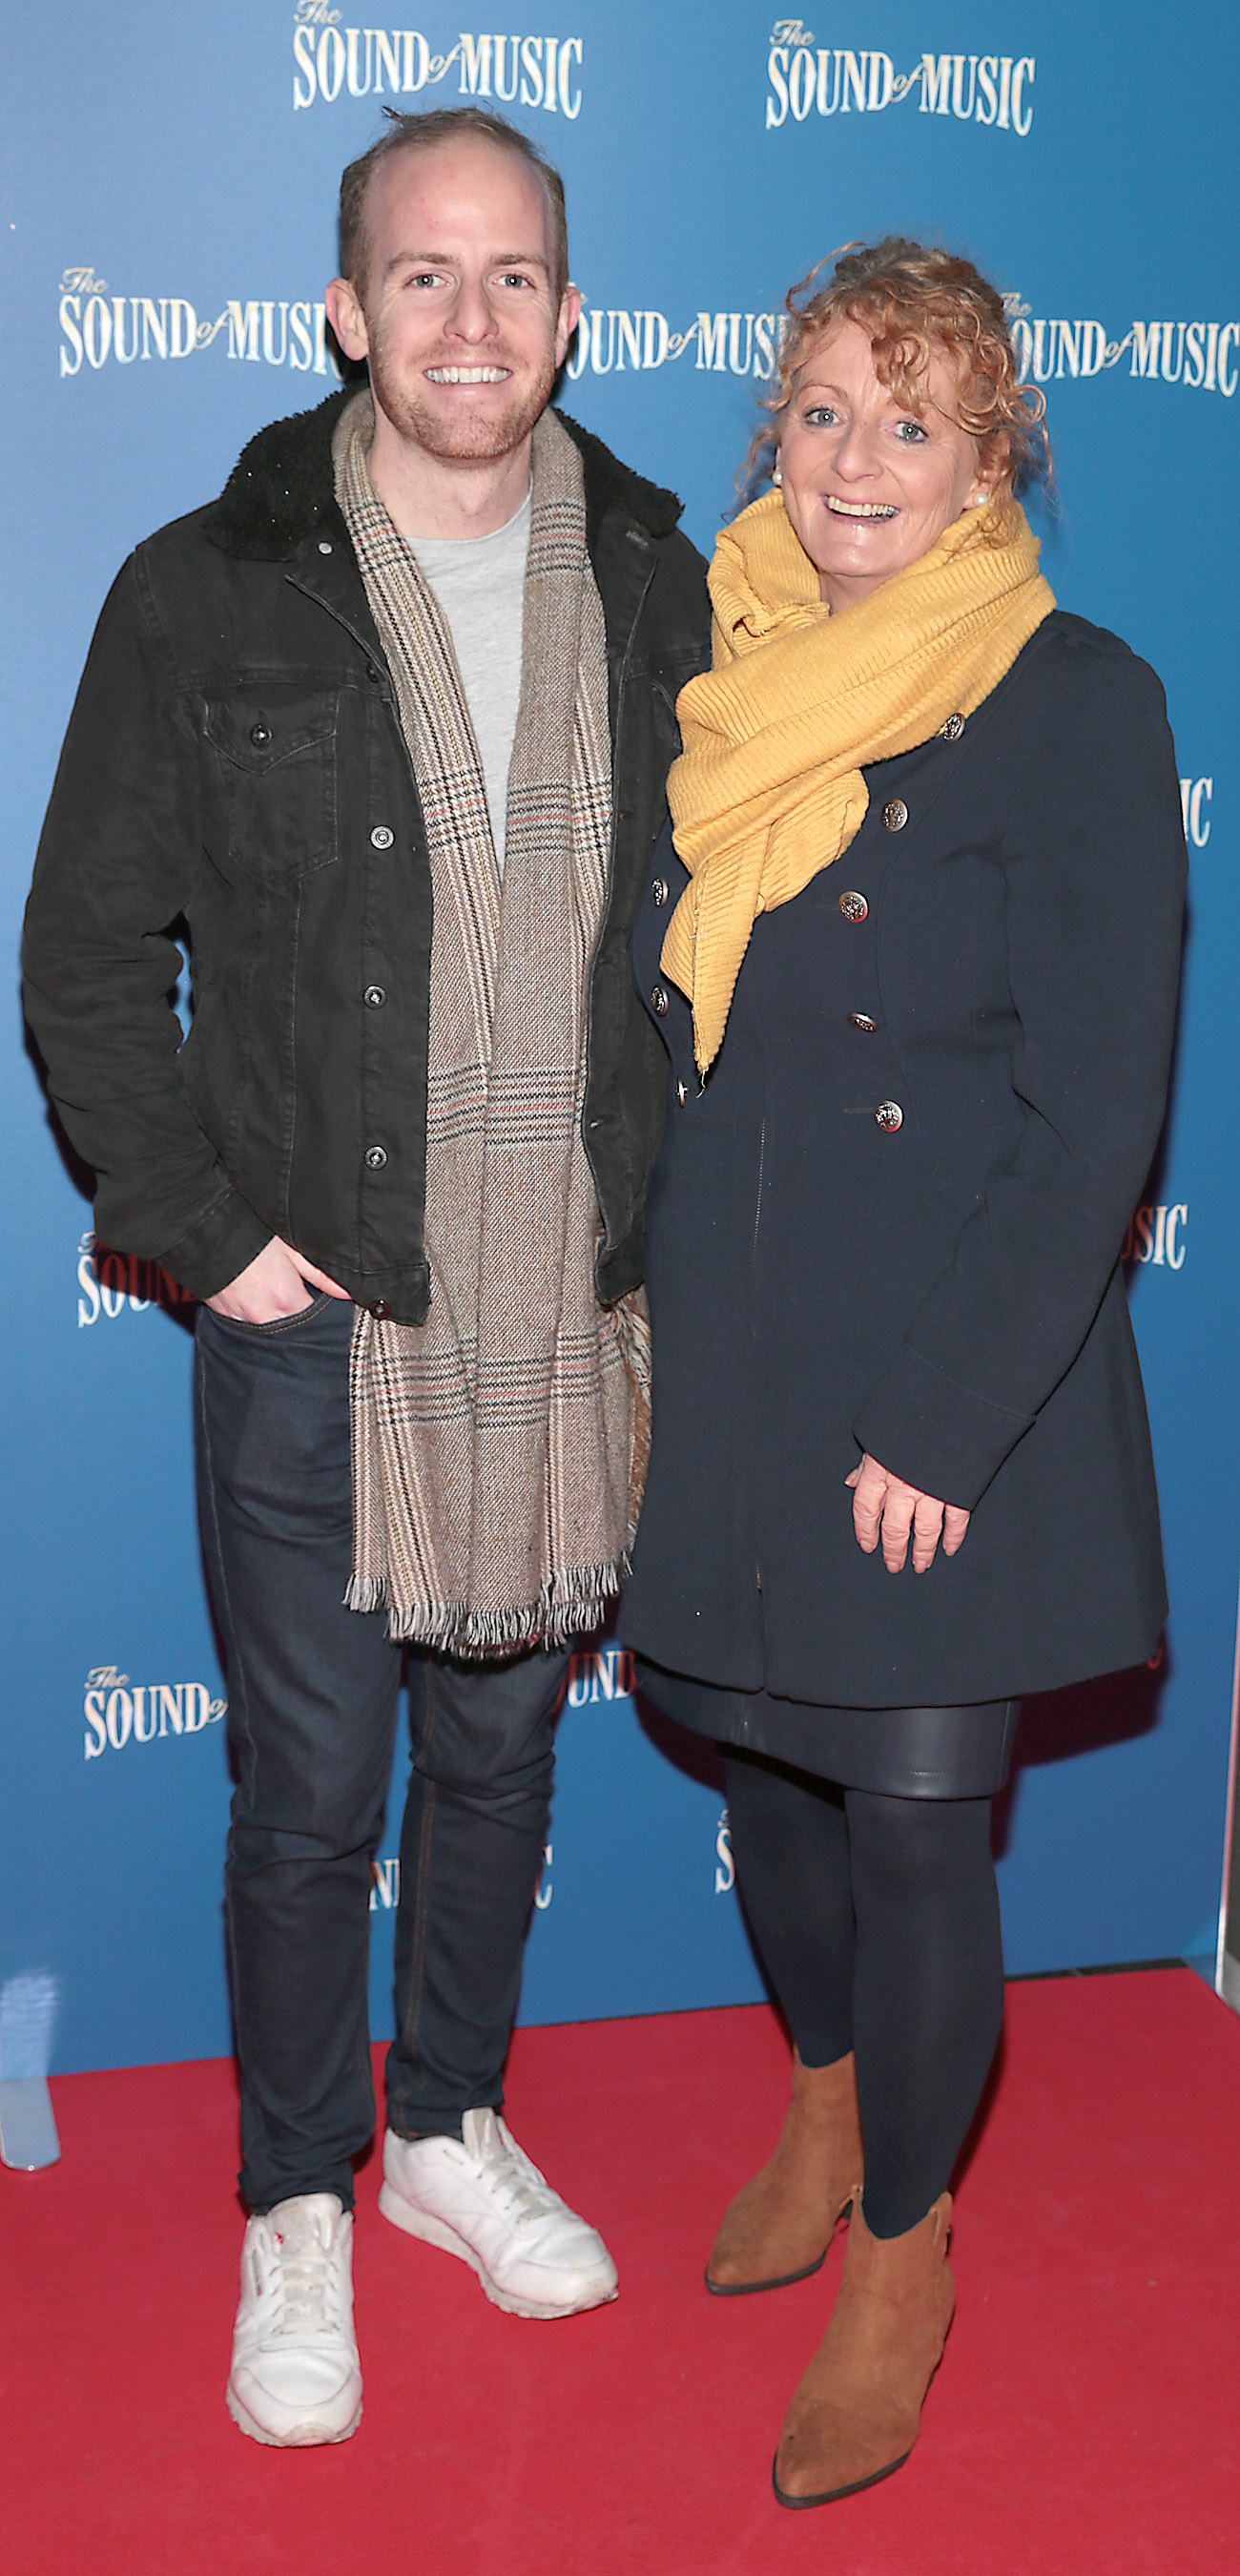 Brendan O Louglin and Ann Cahill pictured at the opening night of The Sound of Music at the Bord Gais Energy Theatre, Dublin. Pic Brian McEvoy